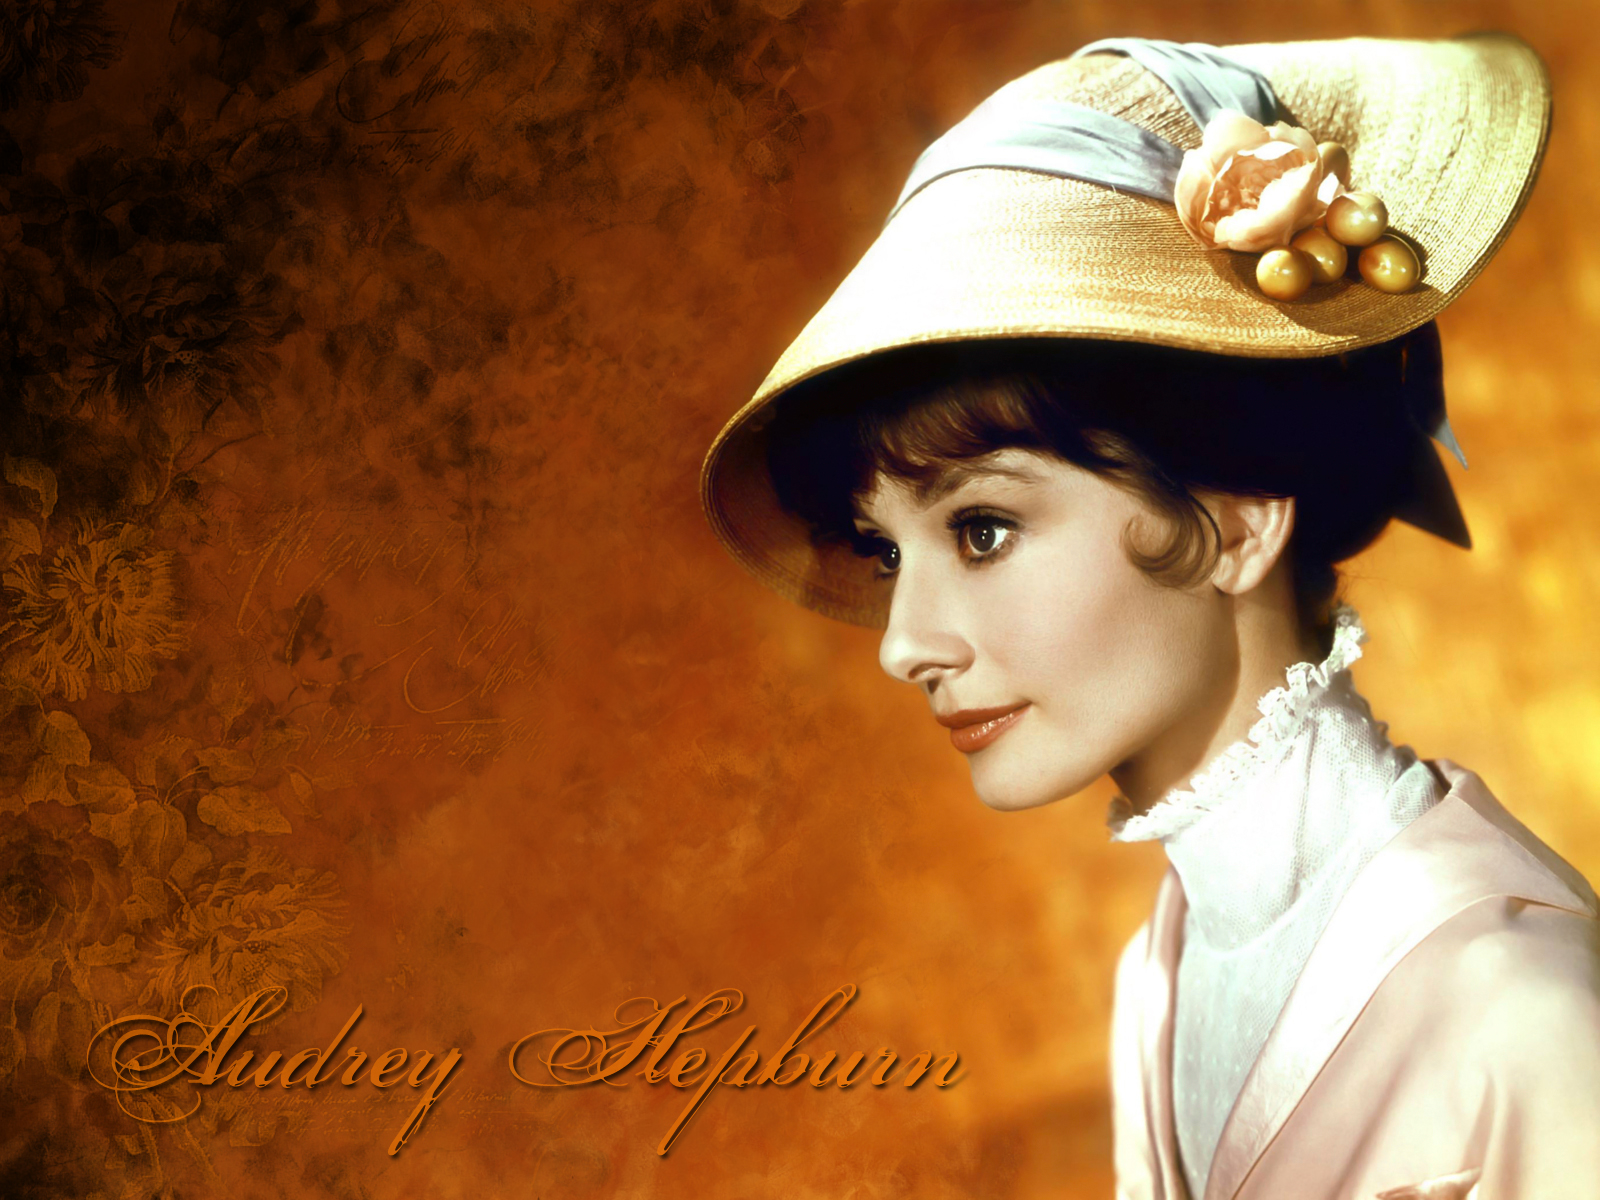 Audrey Hepburn Wallpapers Audrey Hepburn Photos Wallpaper 1600x1200